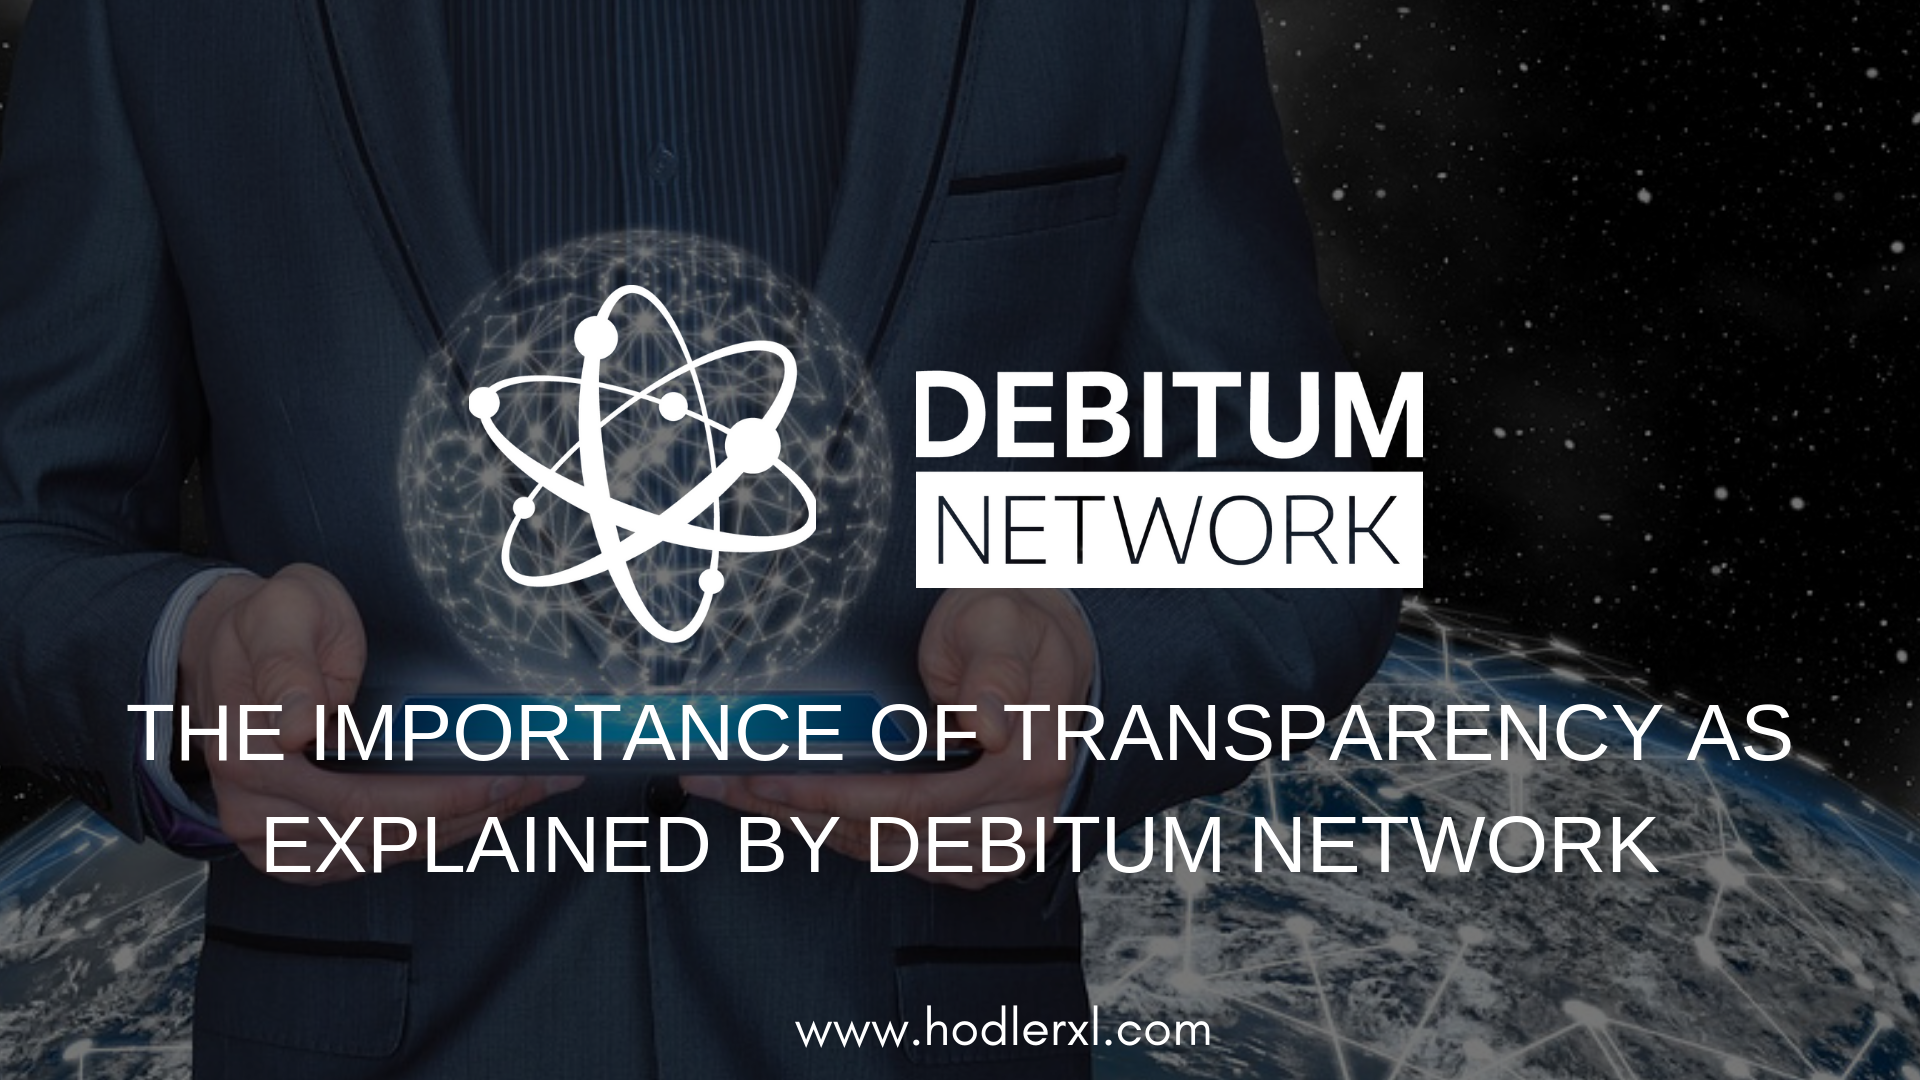 The Importance Of Transparency As Explained By Debitum Network